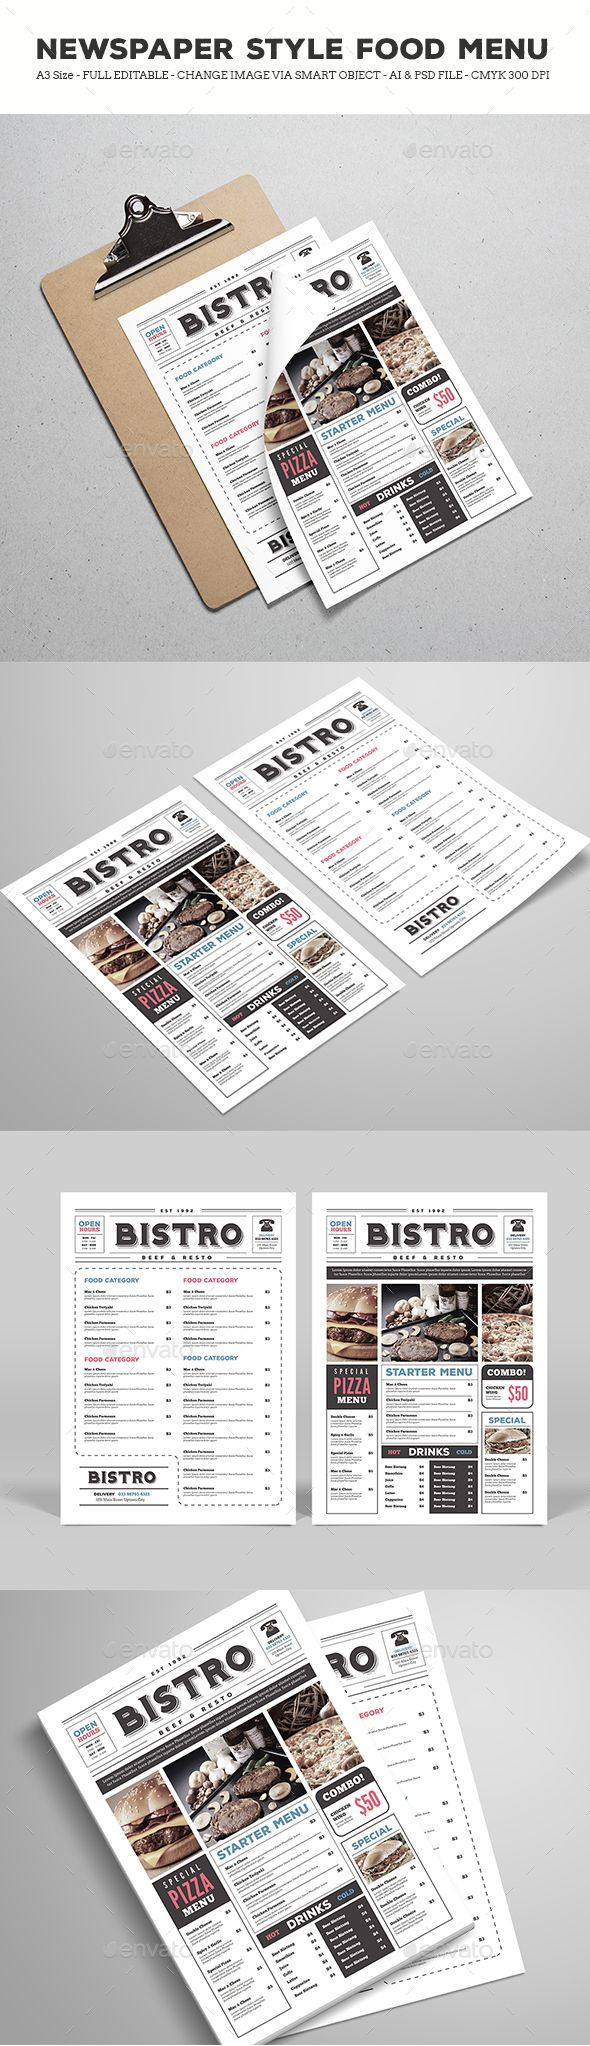 Newspaper Style Food Menu  — PSD Template #11.69x16.54 • Download ➝ https://graphicriver.net/item/newspaper-style-food-menu/18368690?ref=pxcr